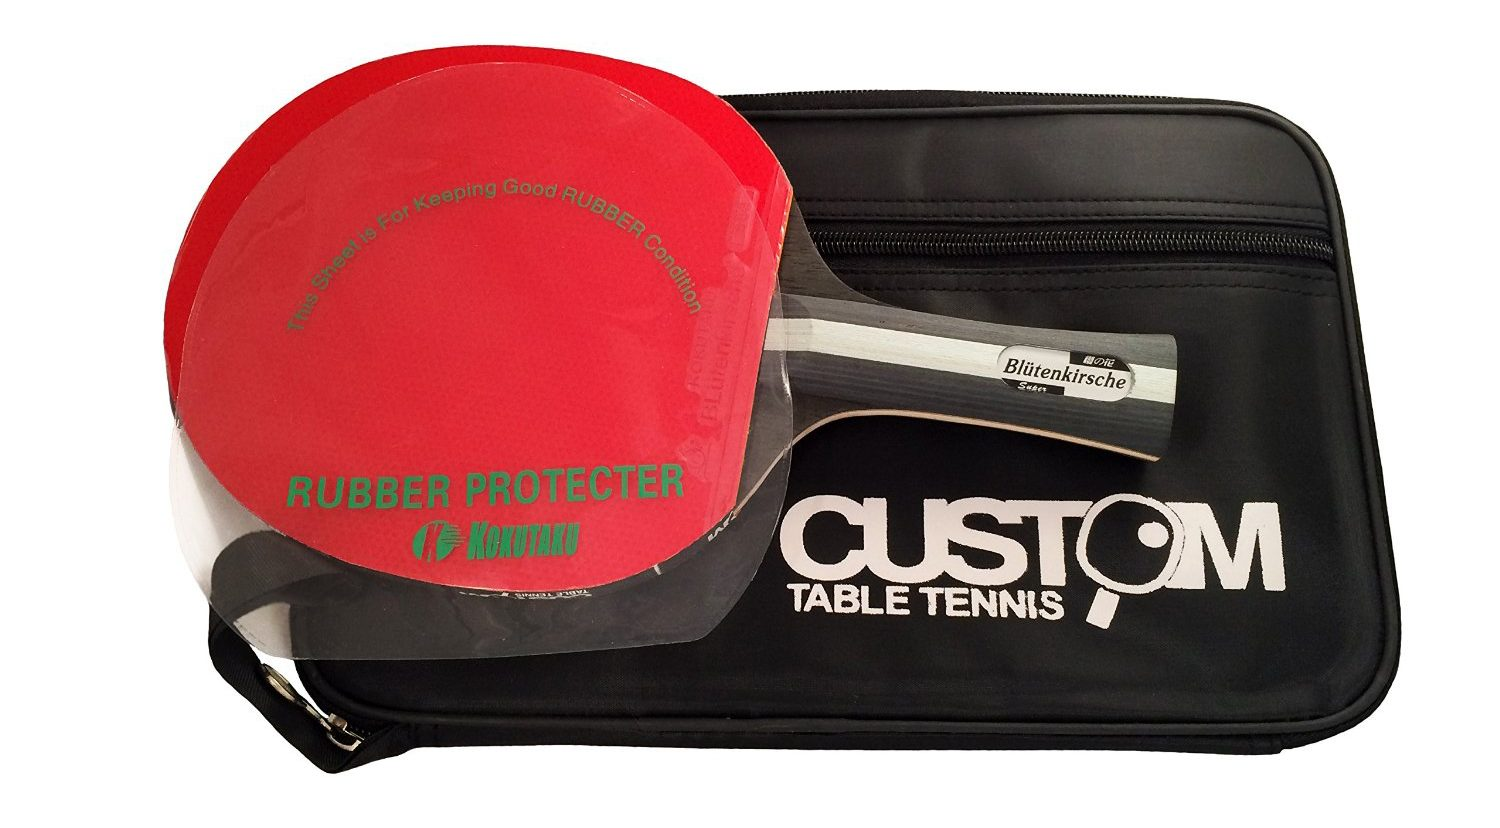 Blutenkirsche Black Mamba Table Tennis Bat Review